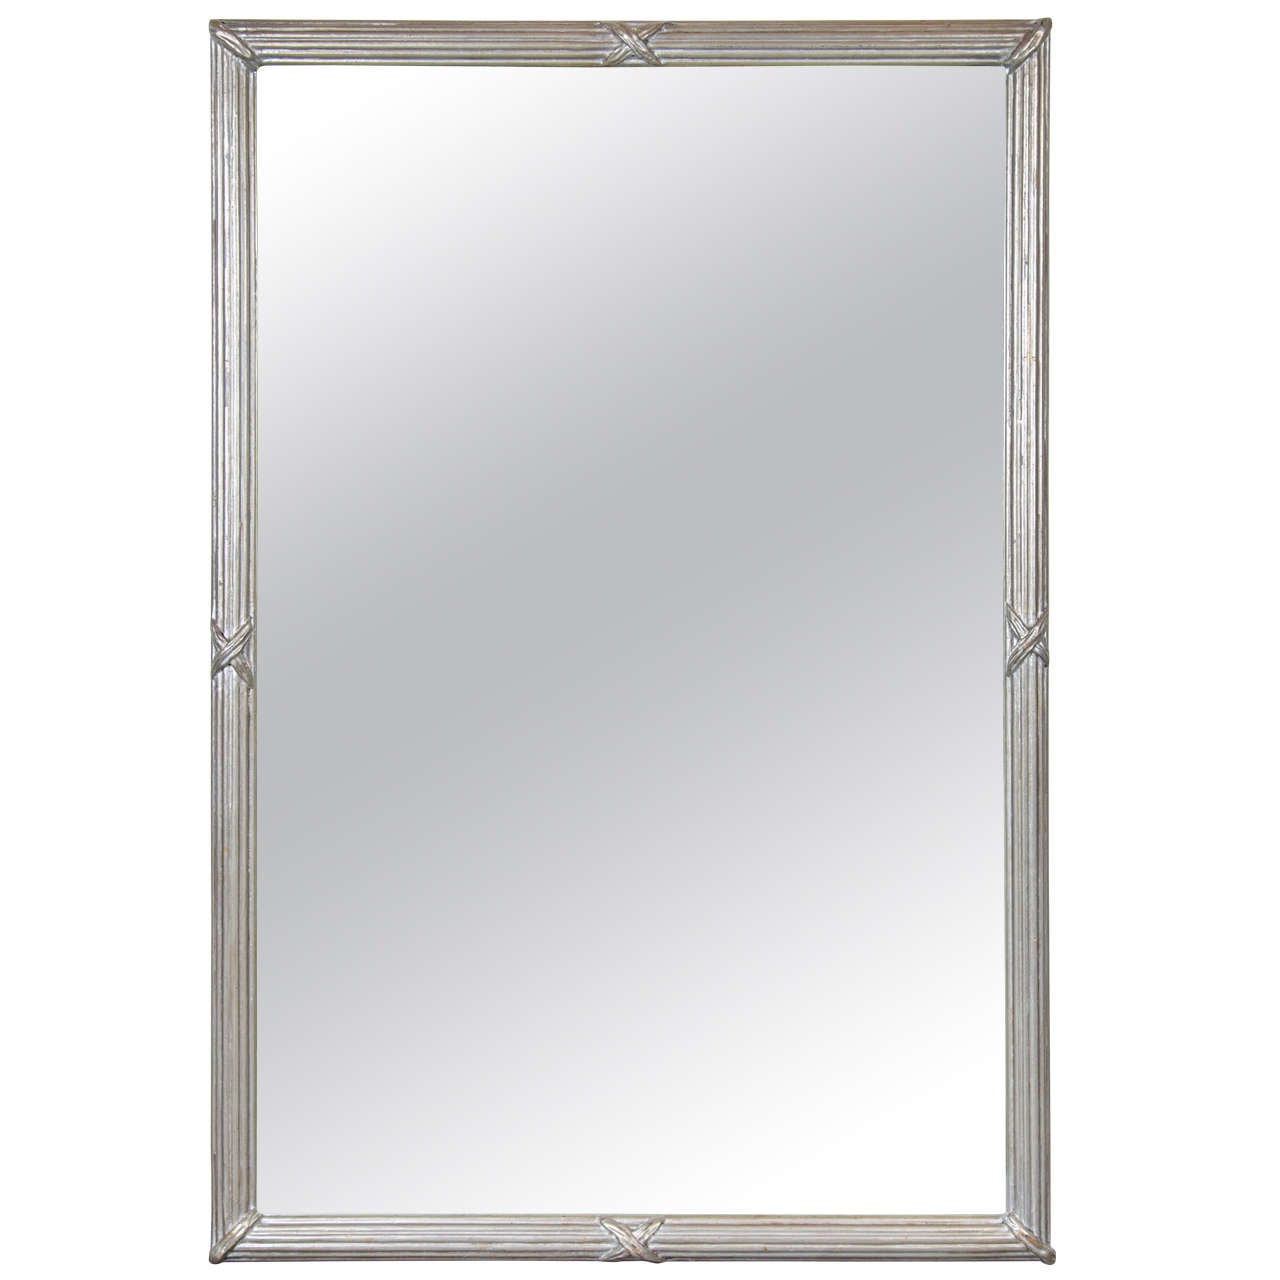 Mid-Century Modernist Mirror with Fluted Frame